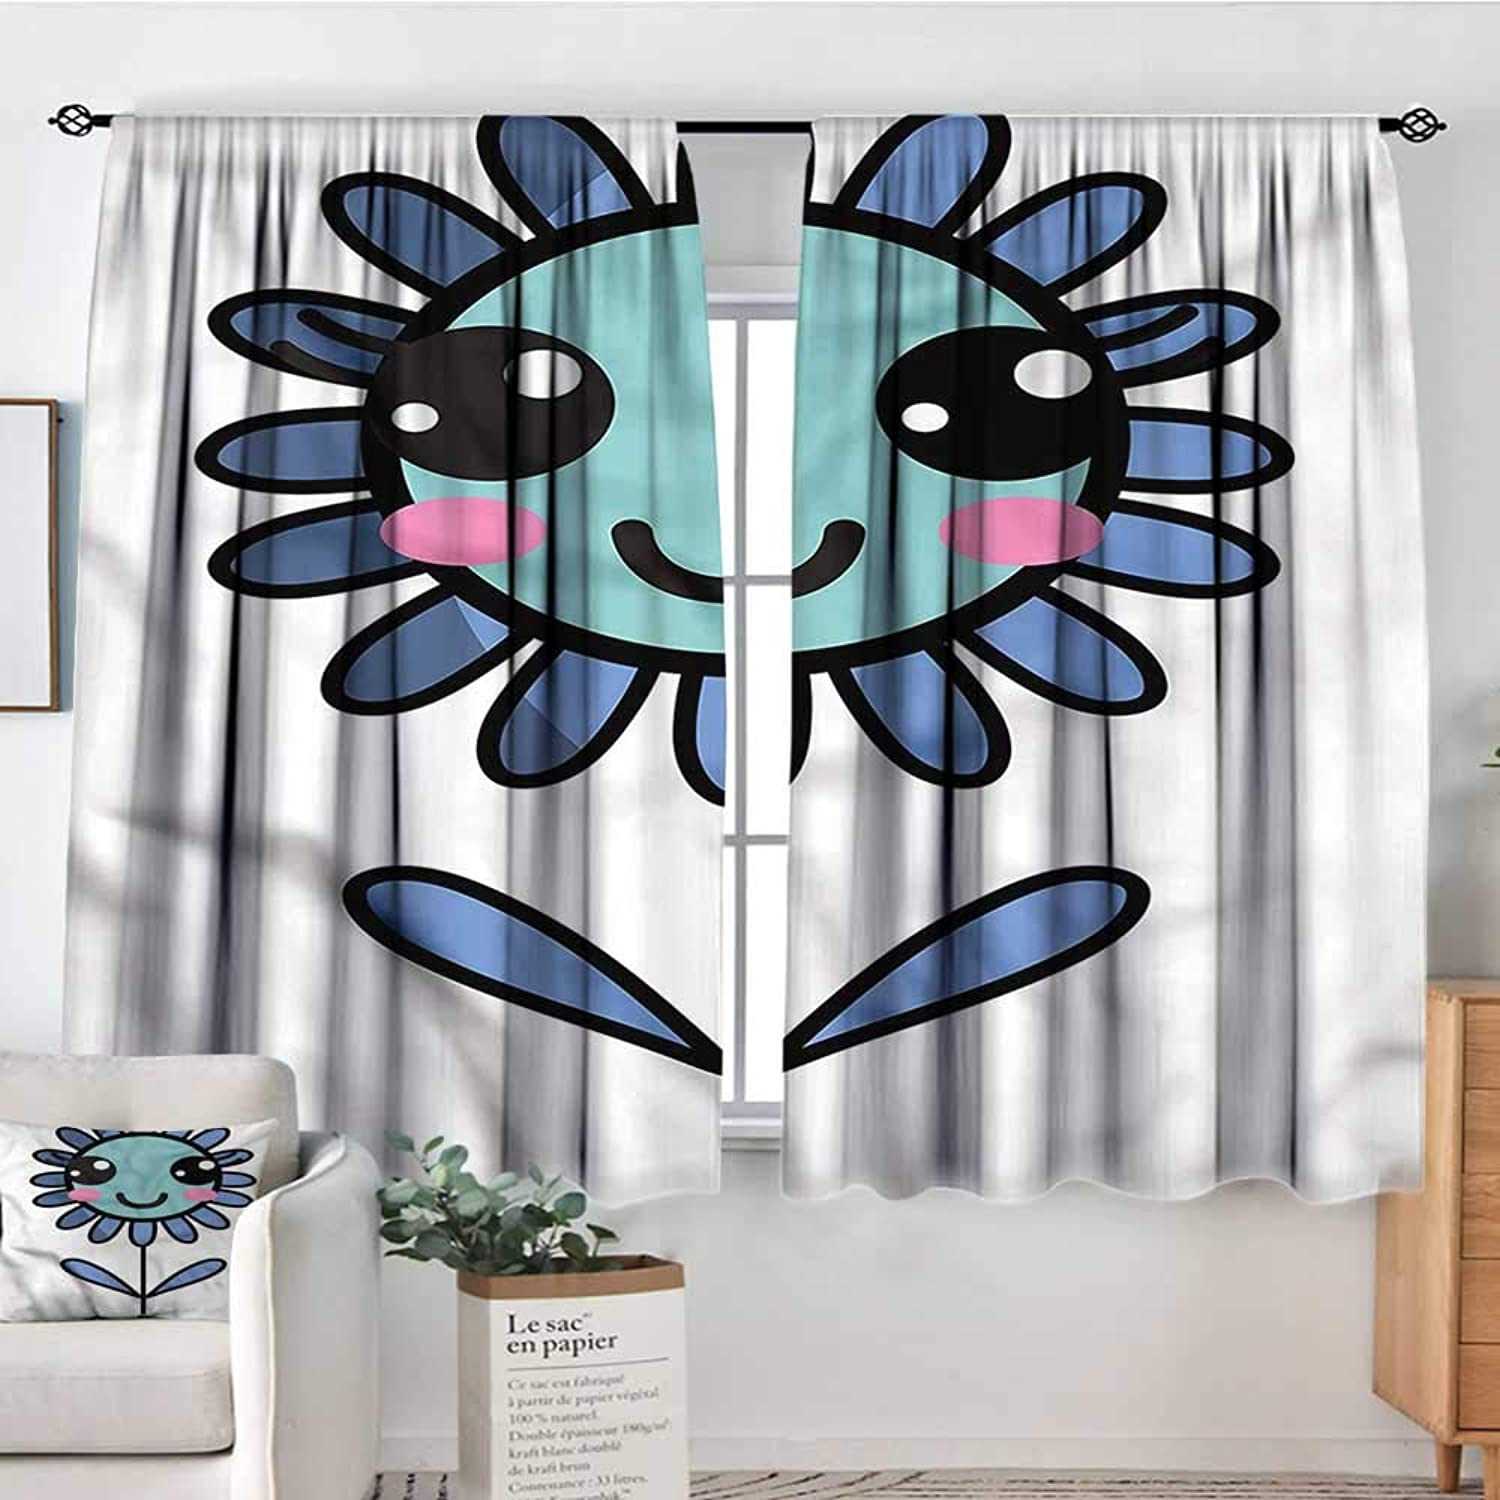 Sanring Kawaii,Rod Curtains Leaves and Petals Cartoon 42 X63  Backout Curtains for Kids Iving Room